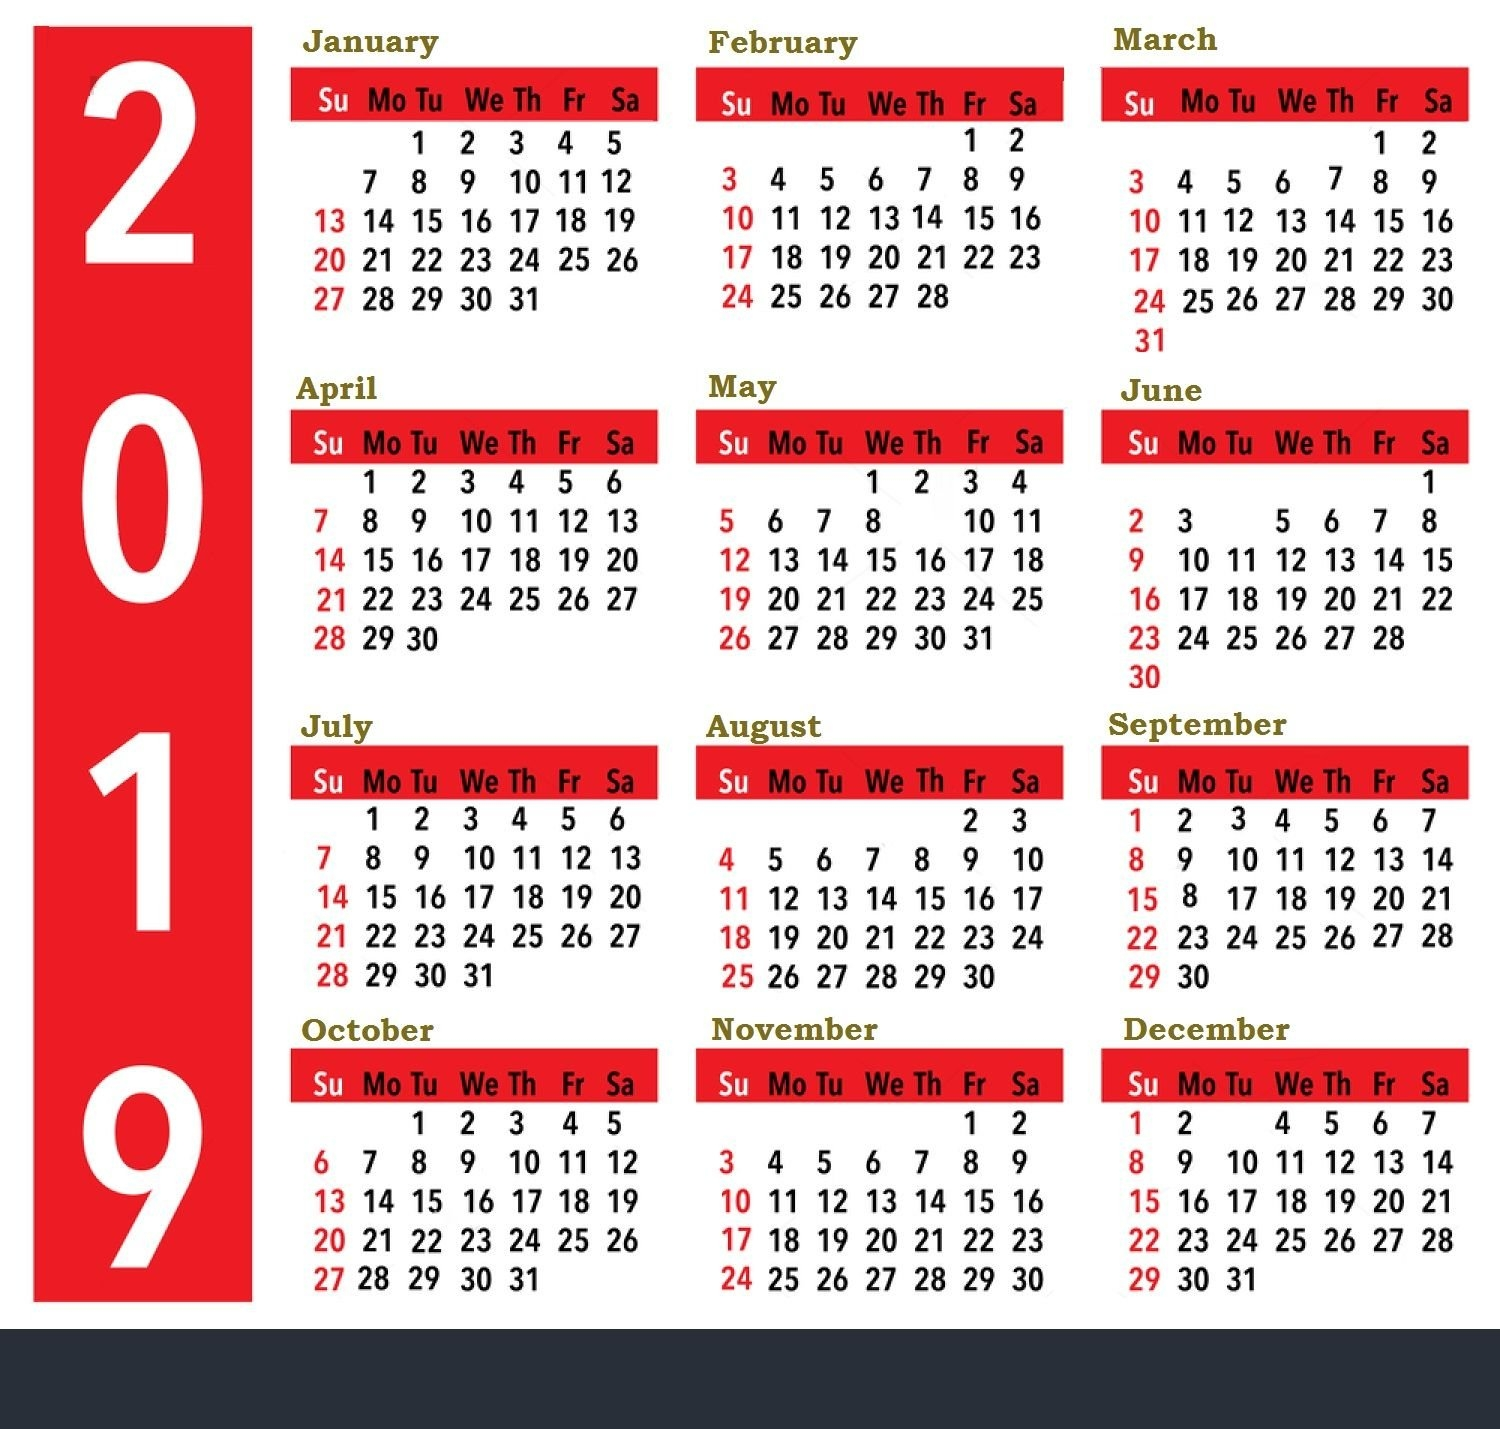 2019 Calendar For United States Holidays All Important Dates And Calendar 2019 Events